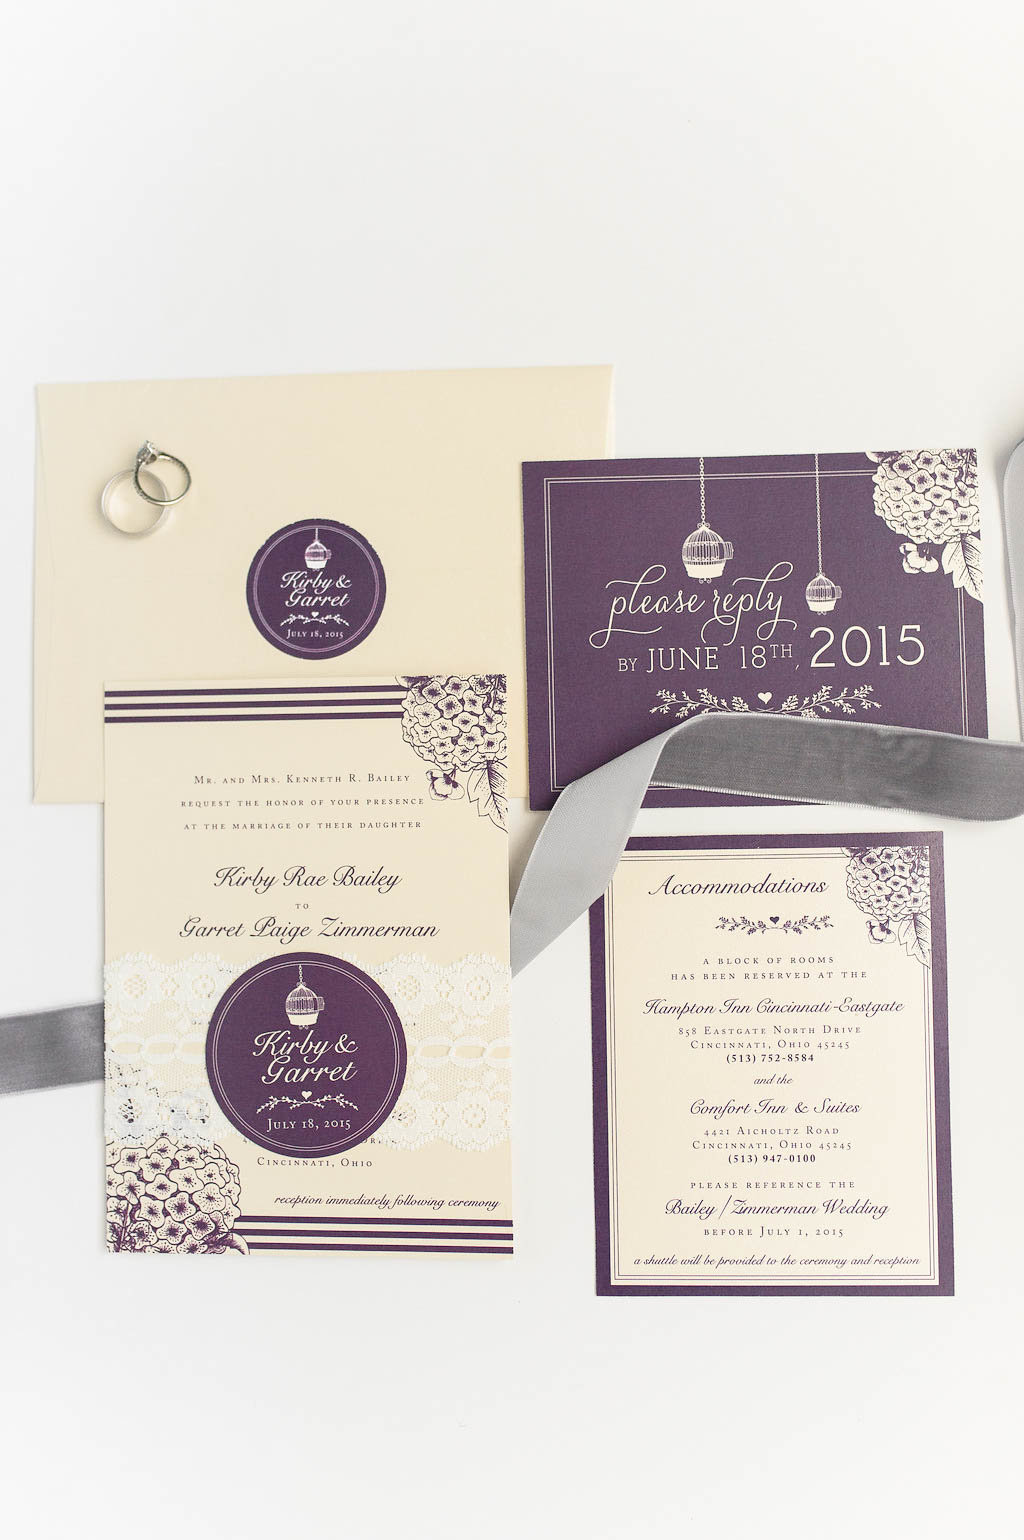 Melissa Arey - Hello Invite Design Studio - Photo -0666